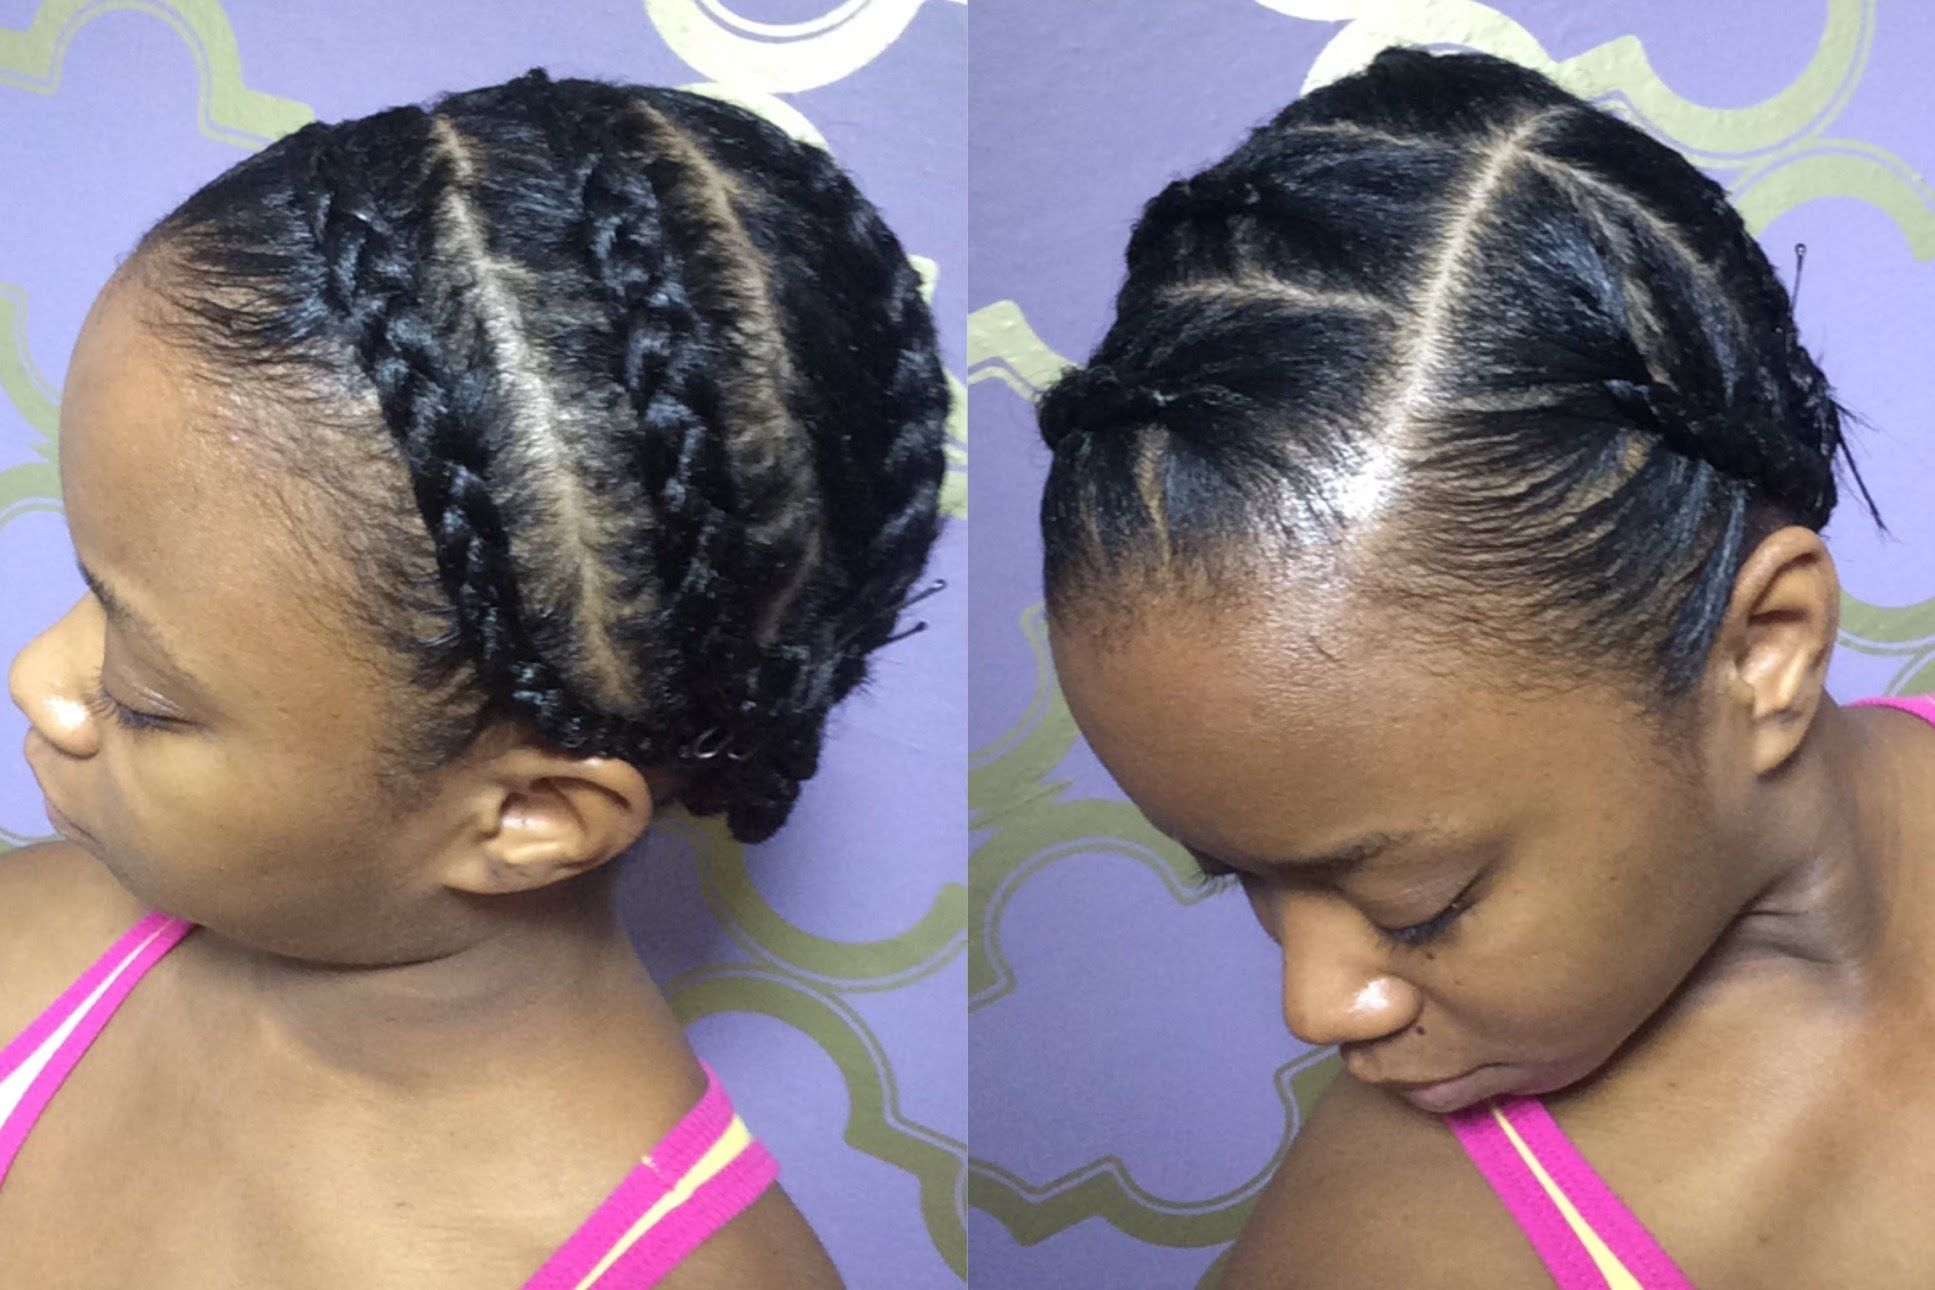 Braid Pattern Under Wigs I Always Get The Same Braid Pattern The Fuzzy Front Twist Is For Blending My Hair Into In 2020 Braid Patterns Hair Hairstyles For Thin Hair